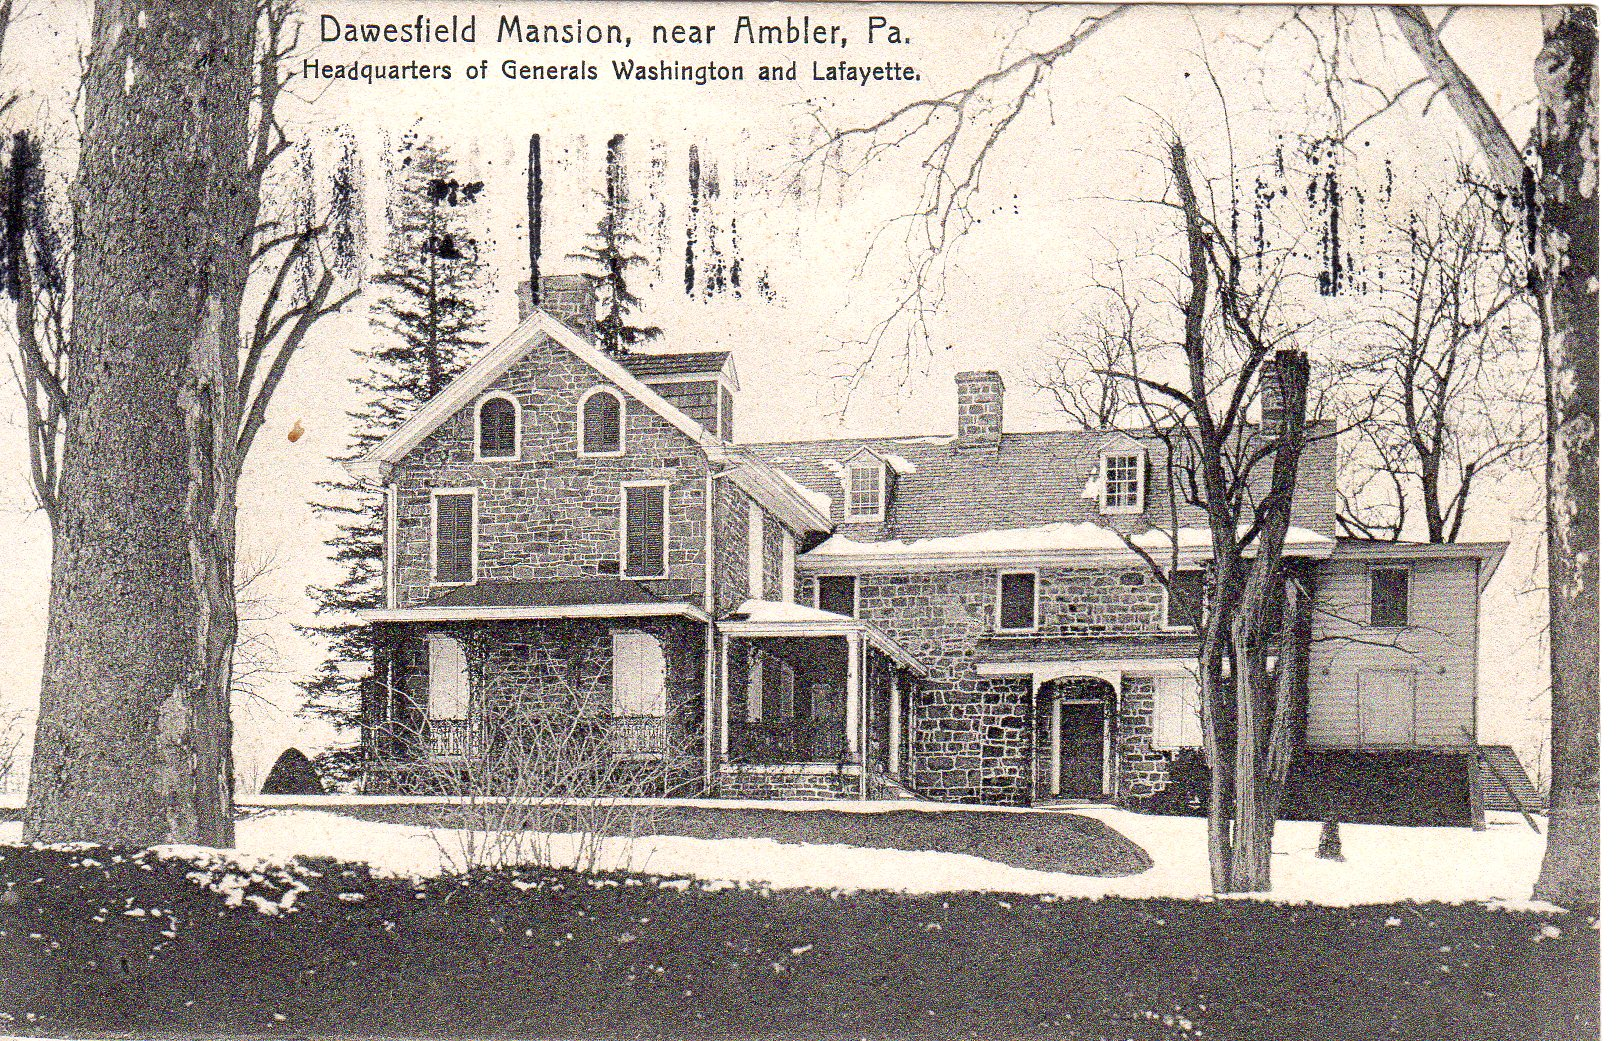 Post Card Collection (E Simon)_2682_64_Dawesfield Mansion (near Ambler, Pa) Headquarters of Generals Washington & Lafayette_25 Sep 1909